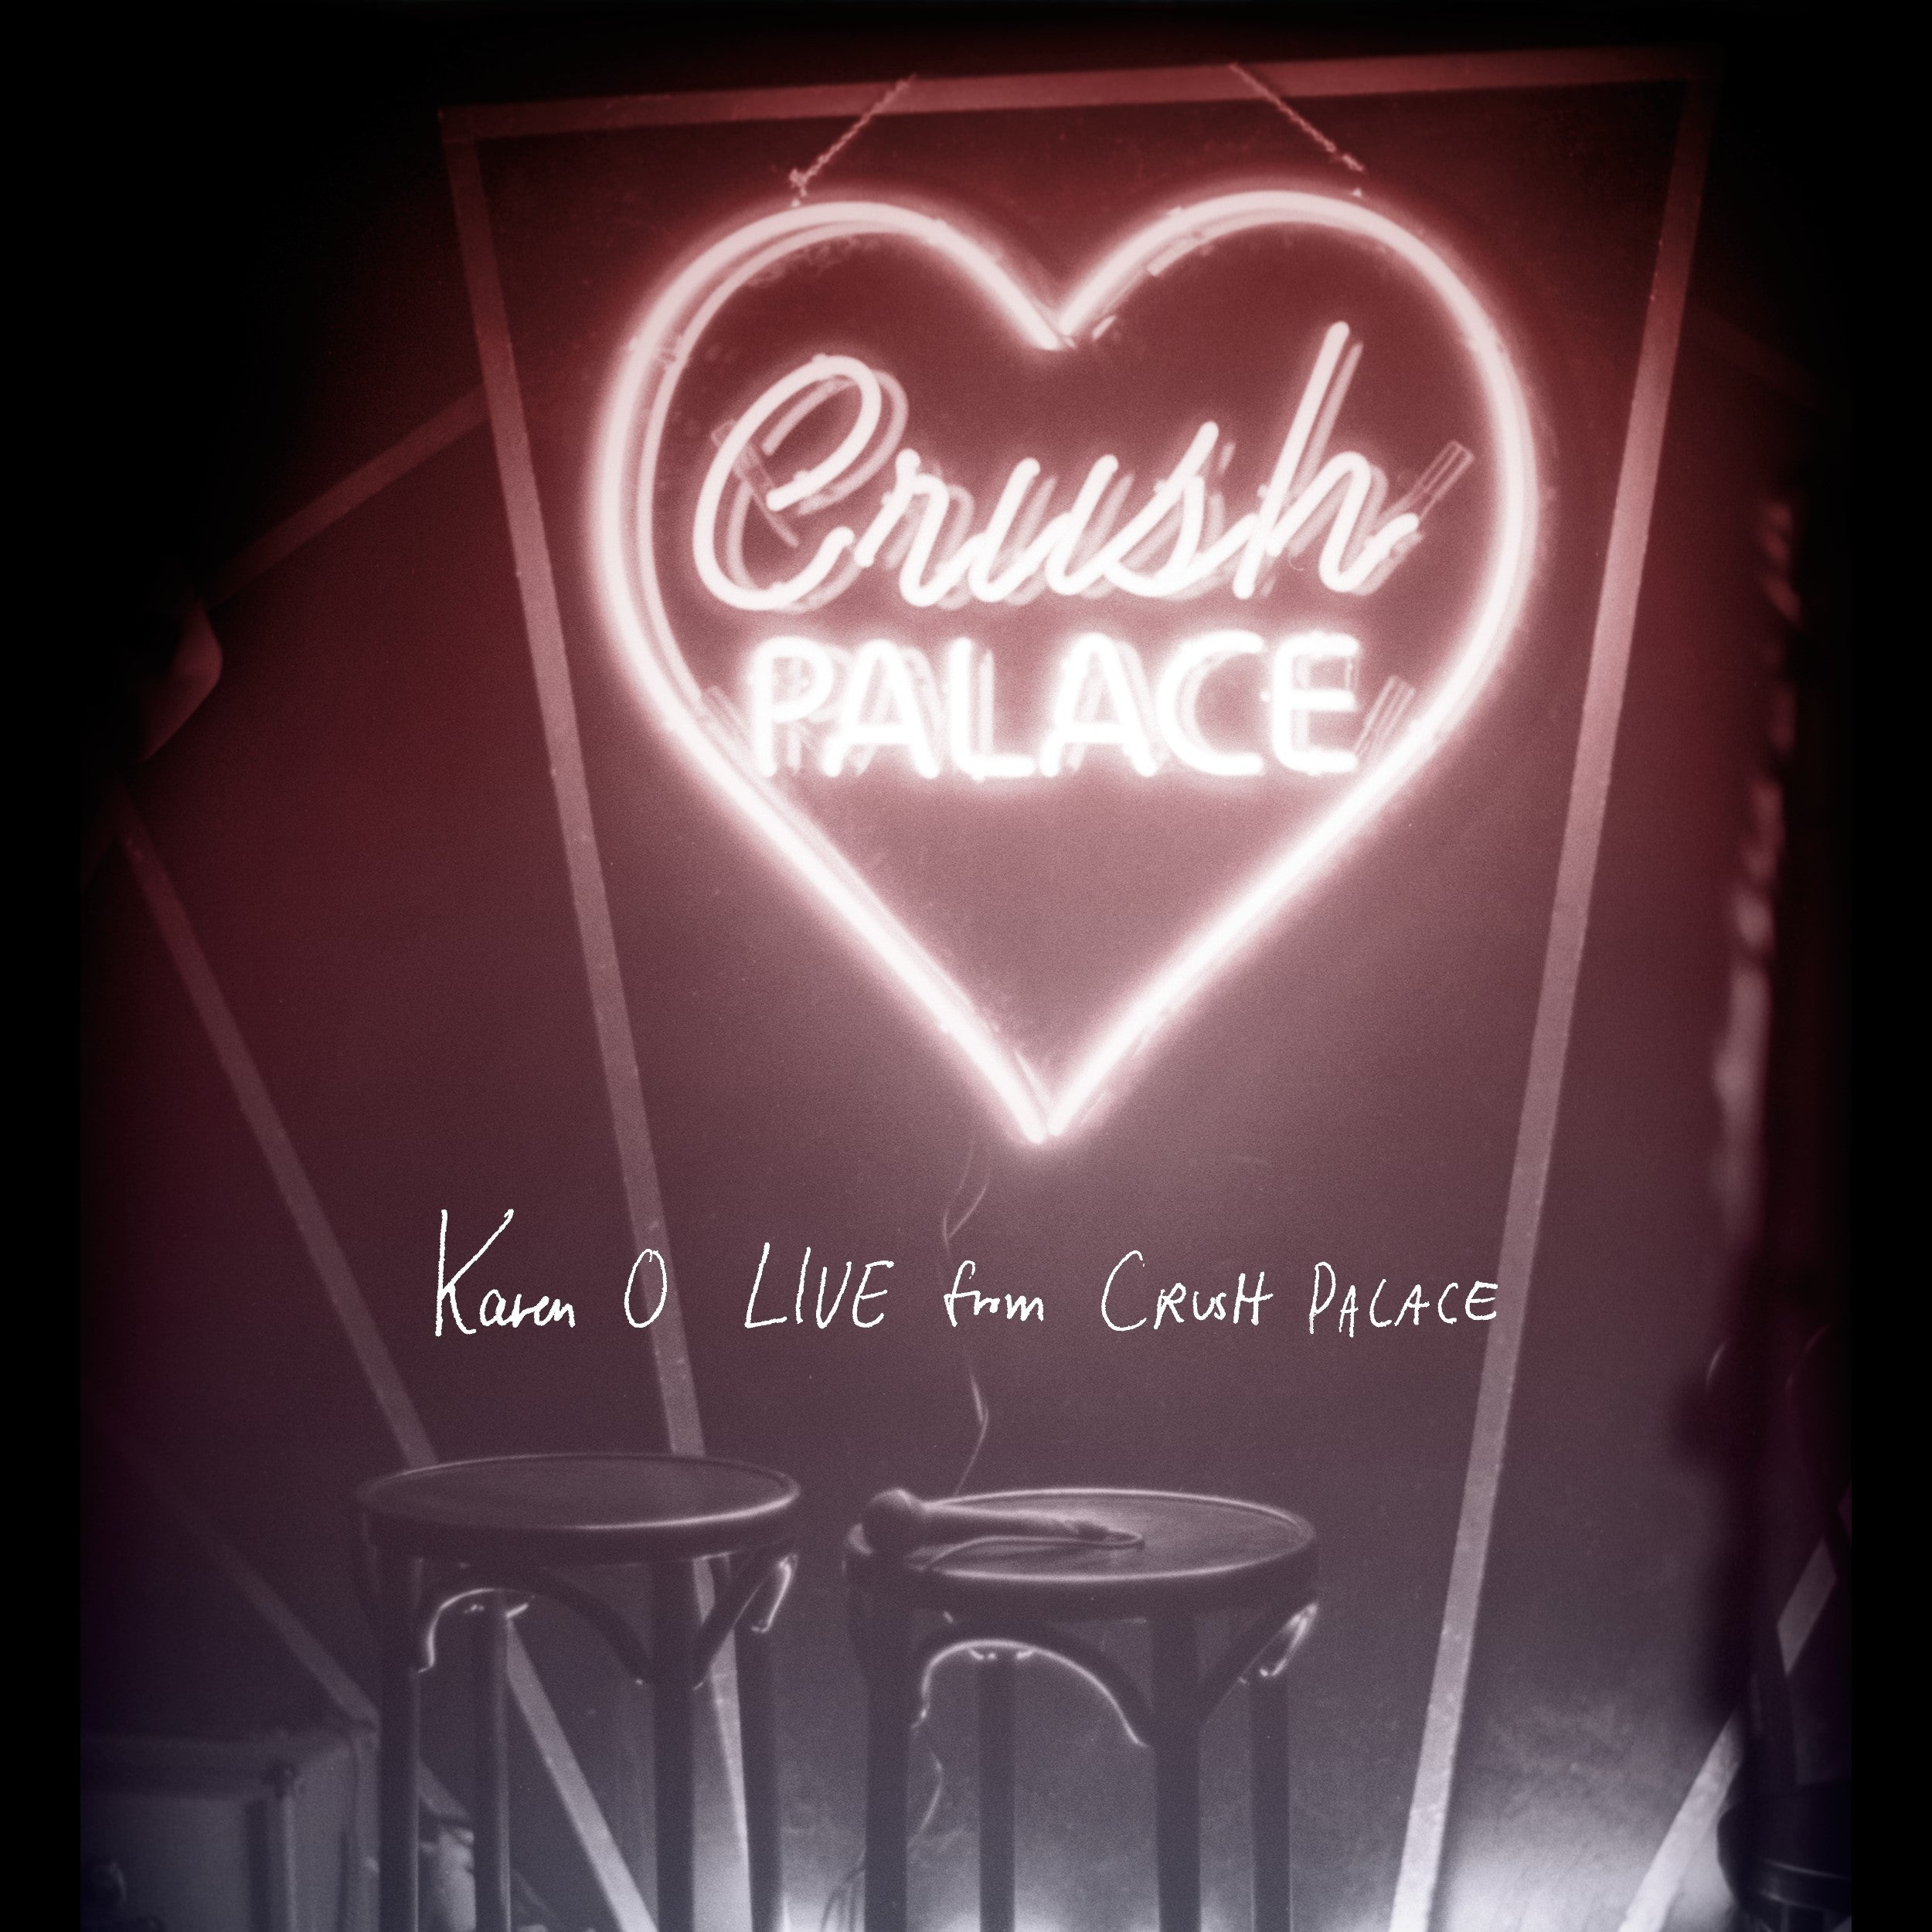 Karen O 'Live From Crush Palace' Digital Download